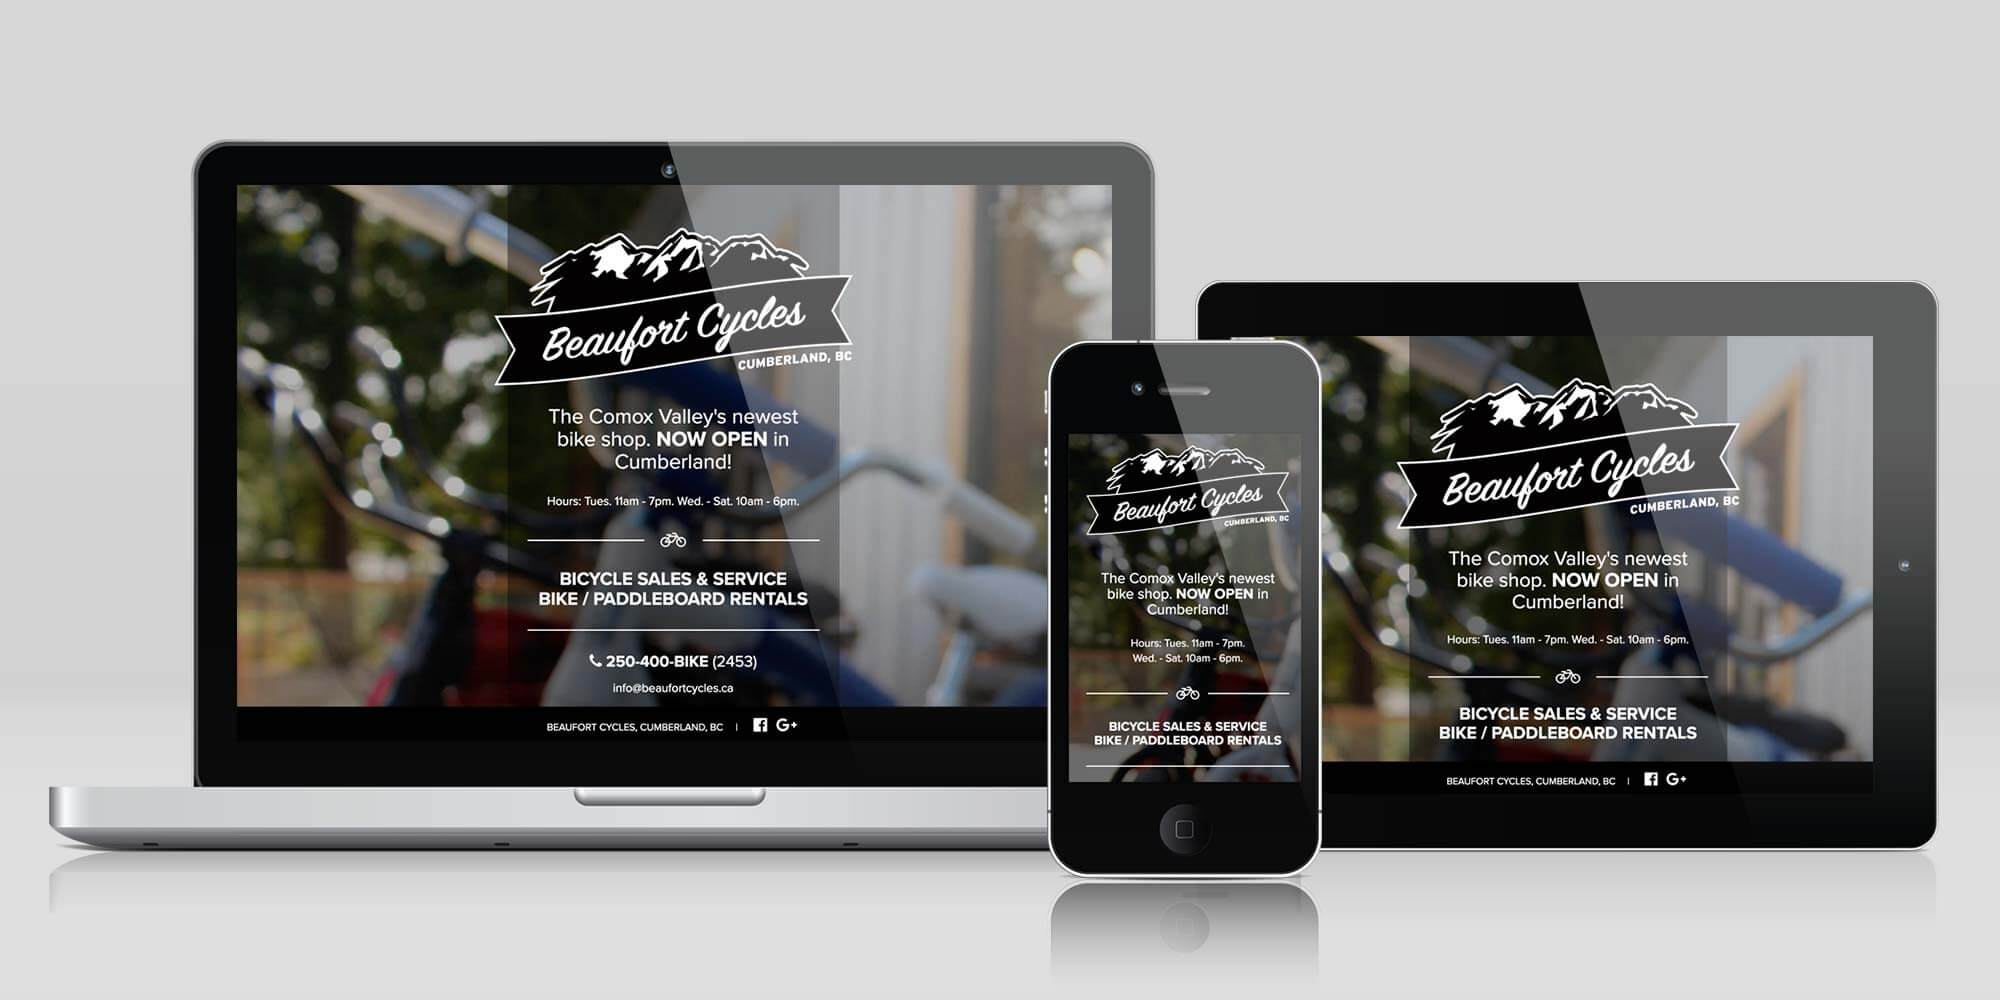 Beaufort Cycles website